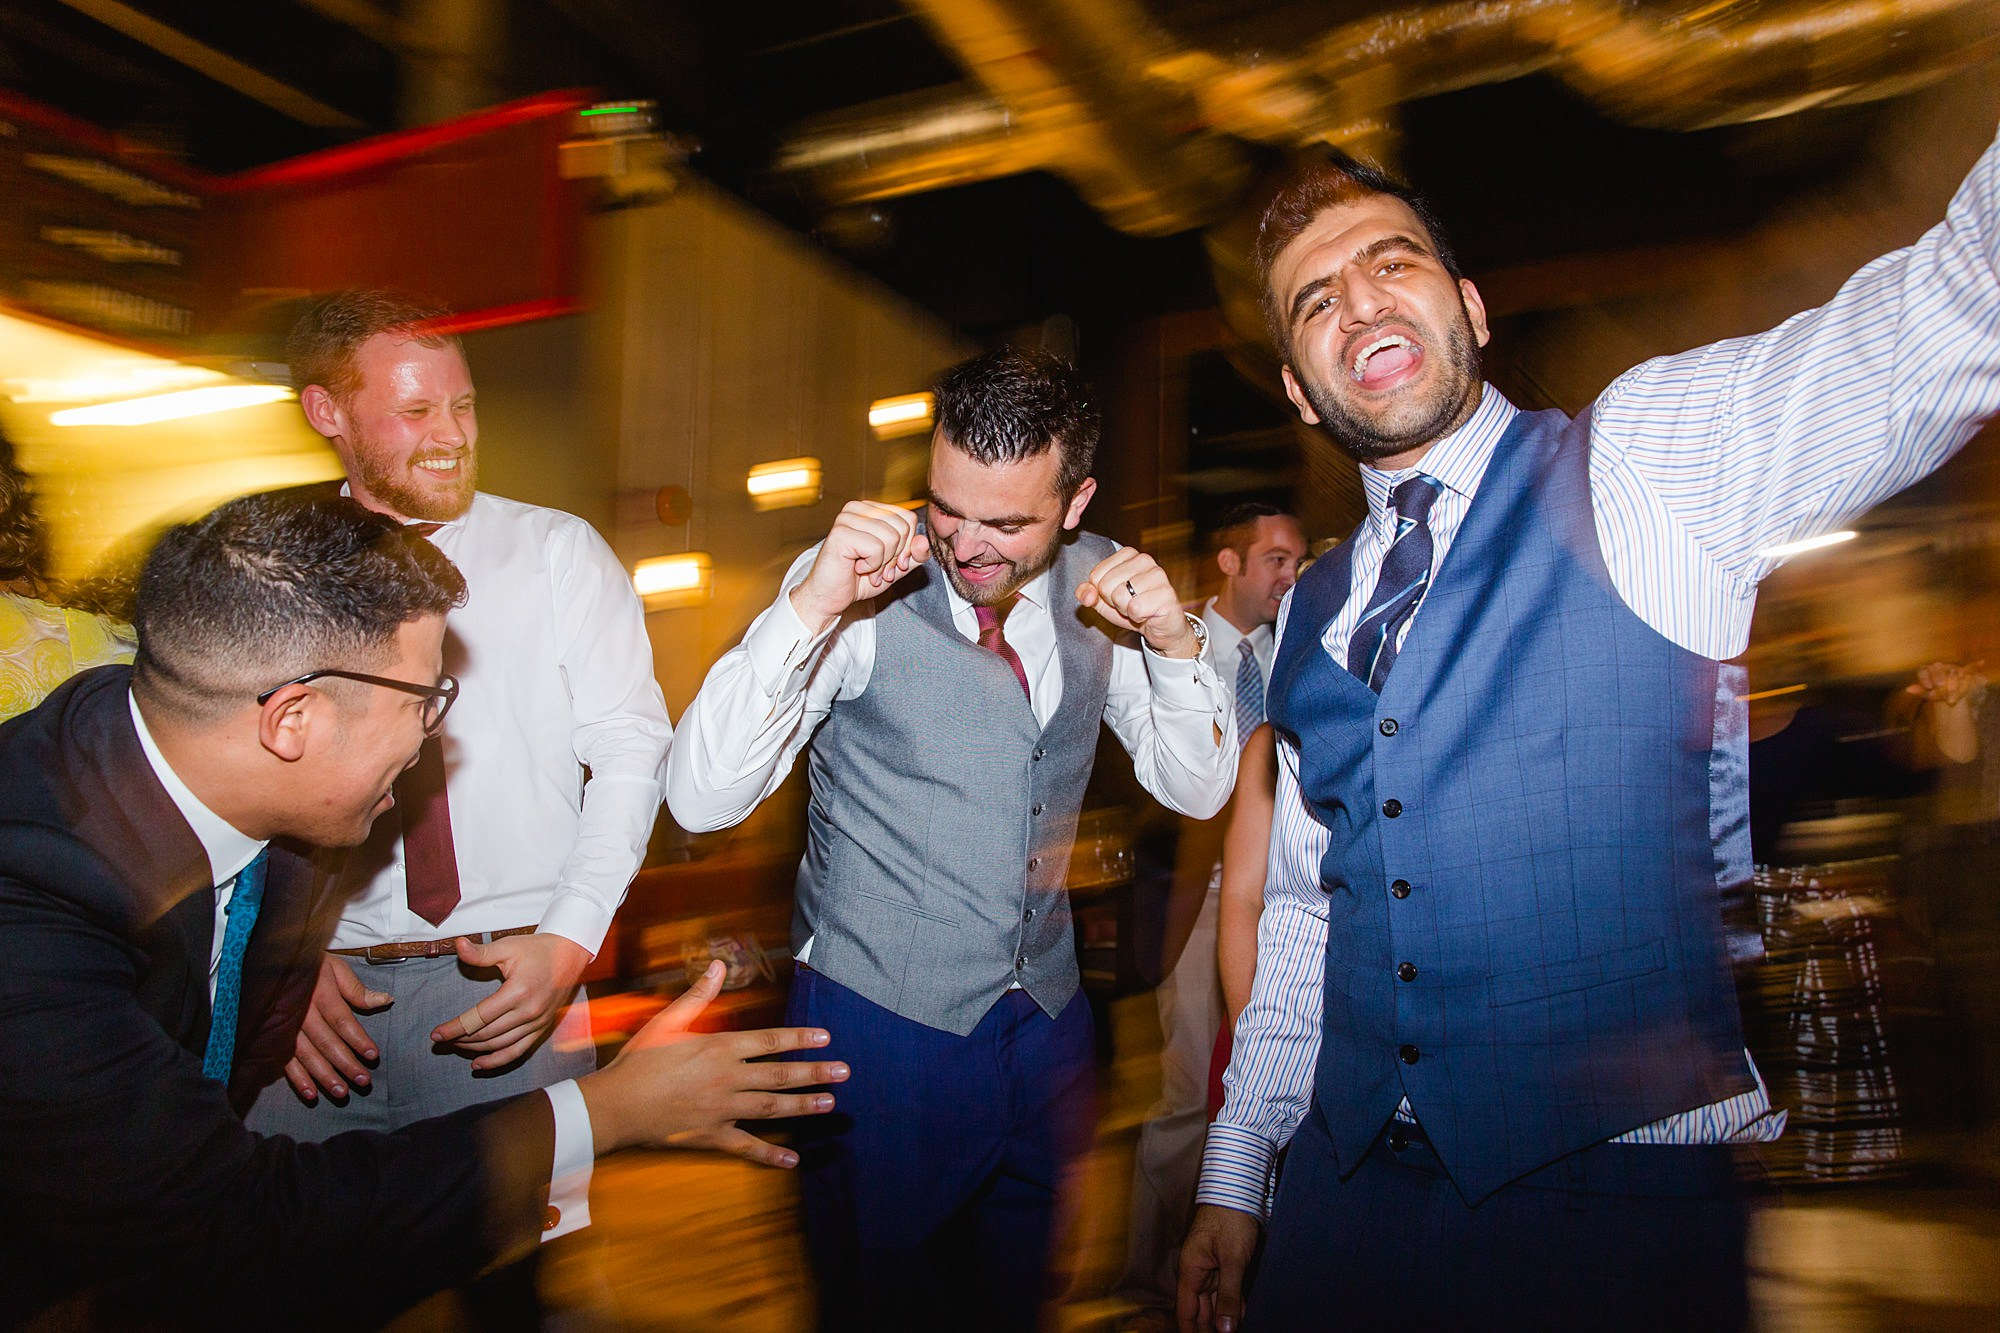 The Union Paddington wedding groom dancing with guests